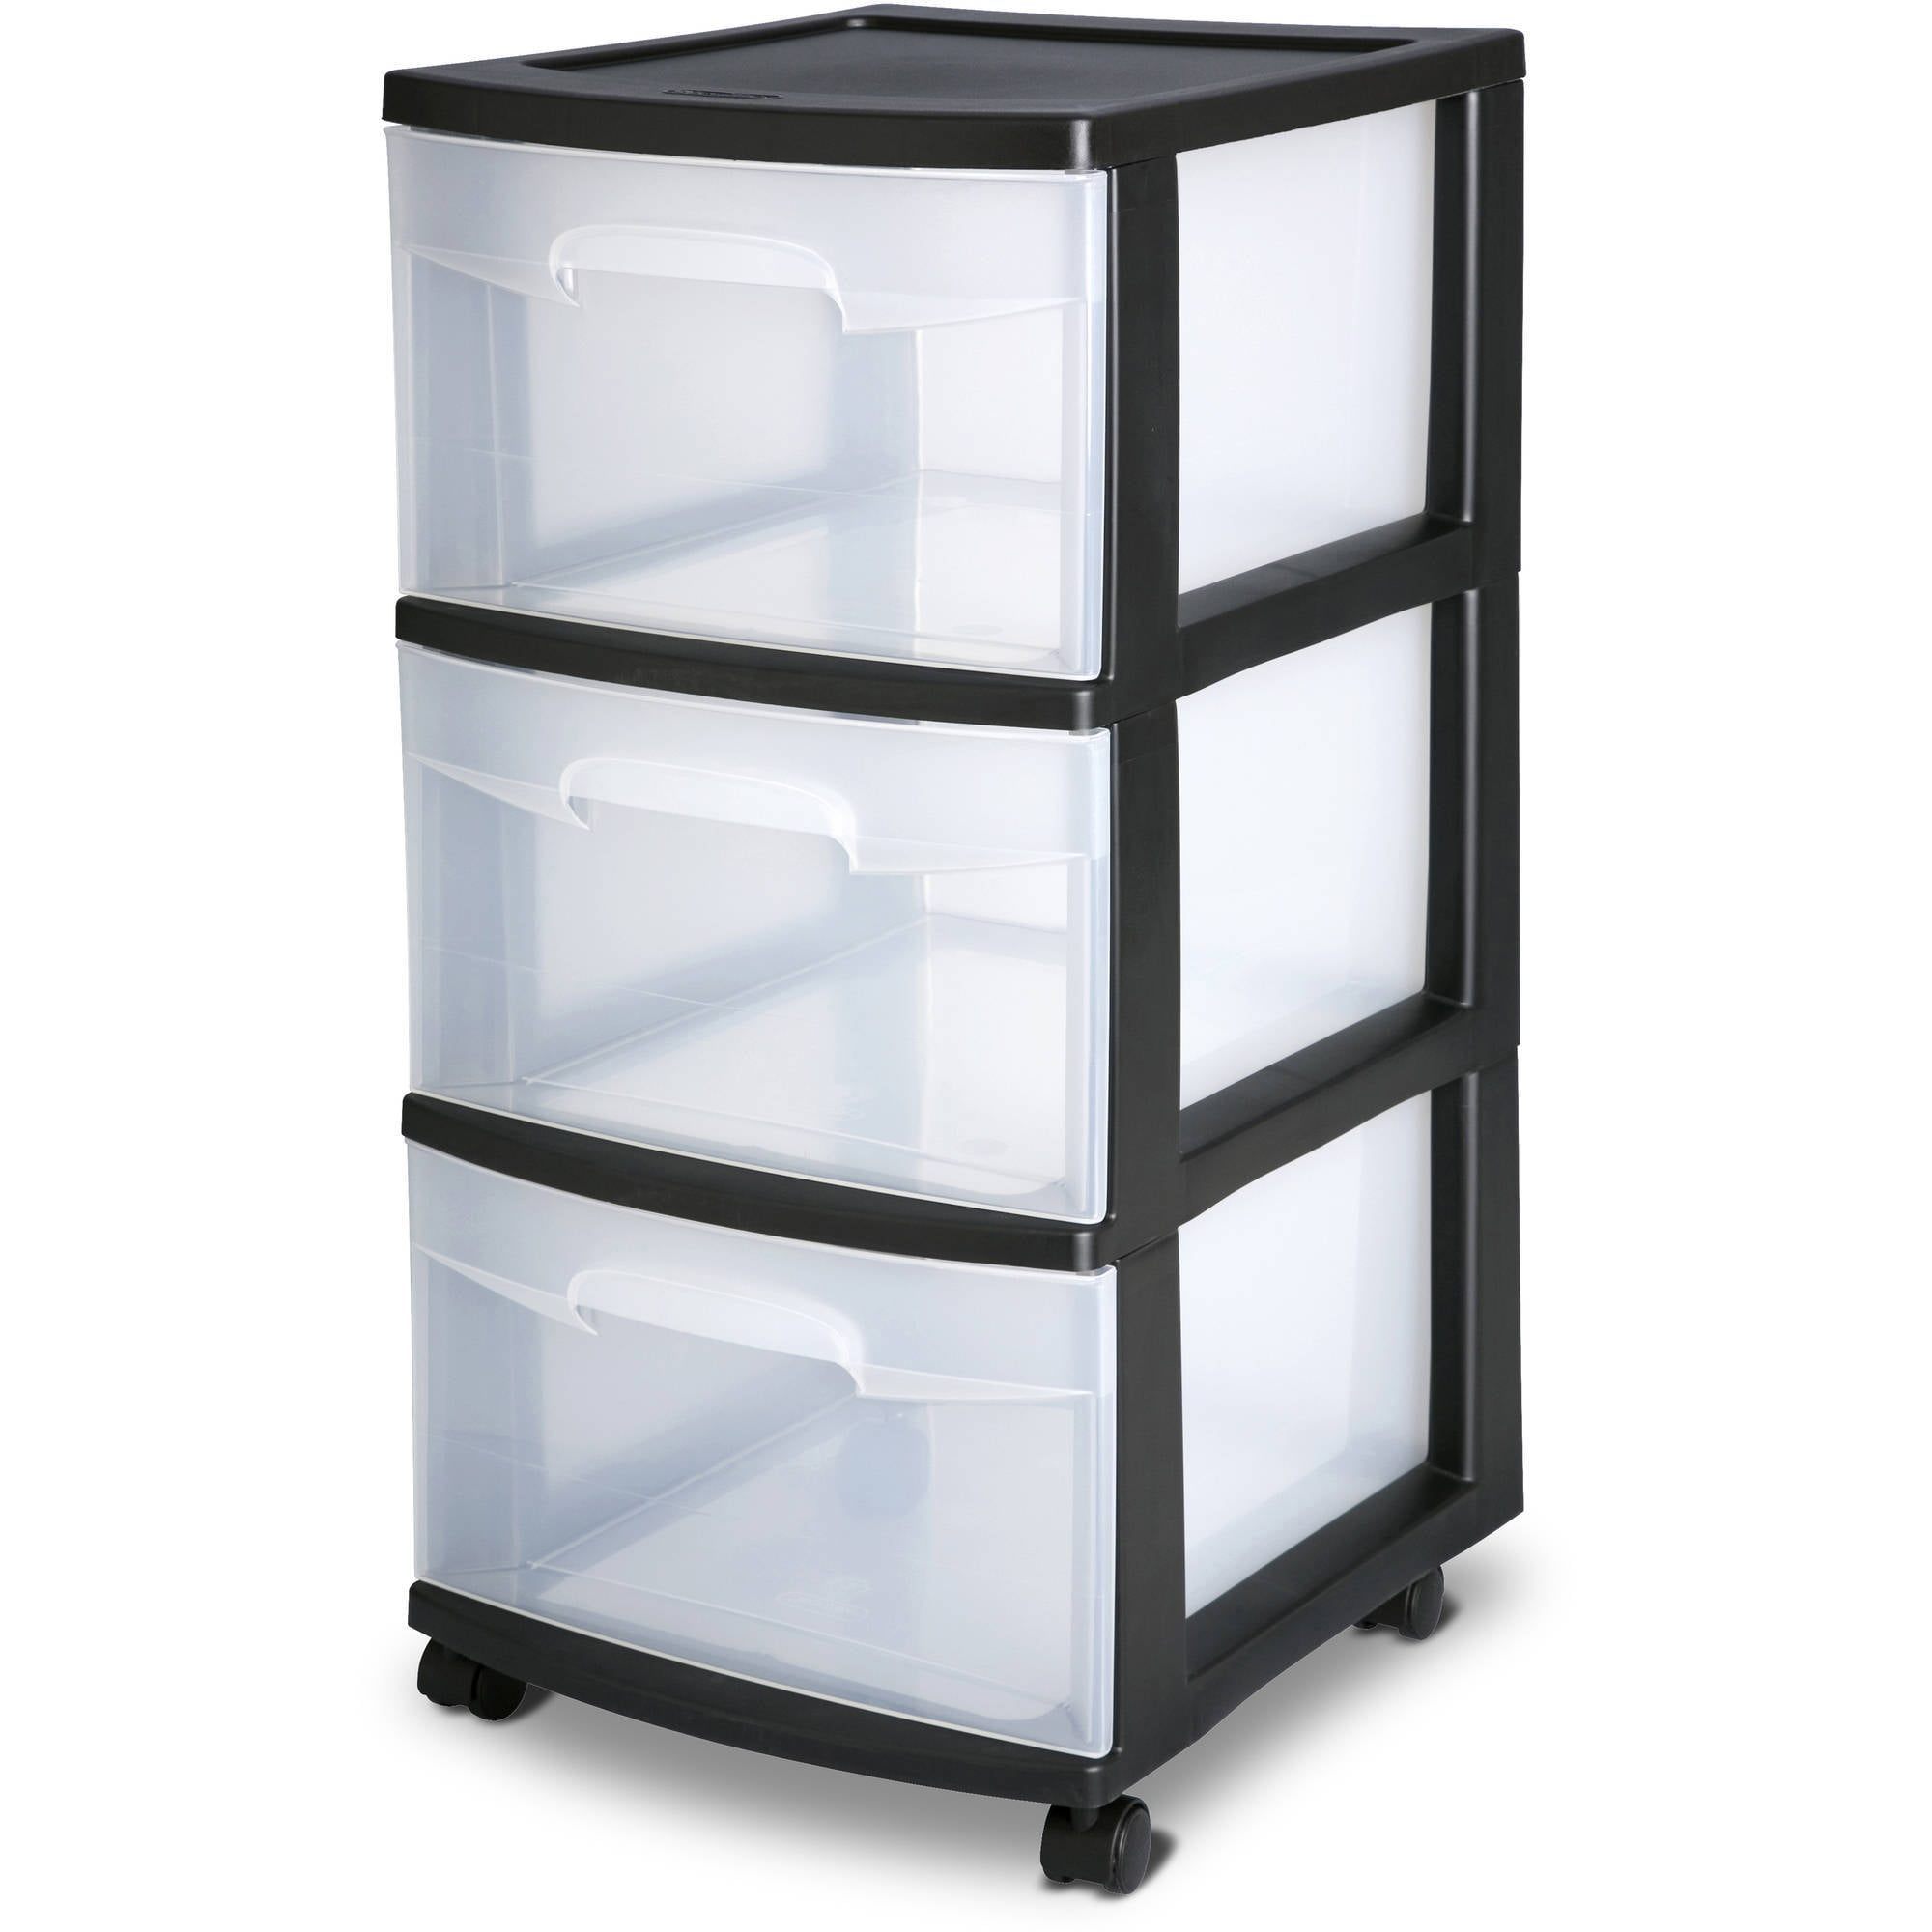 Sterilite 5 Drawer Tower, Black   Walmart.com